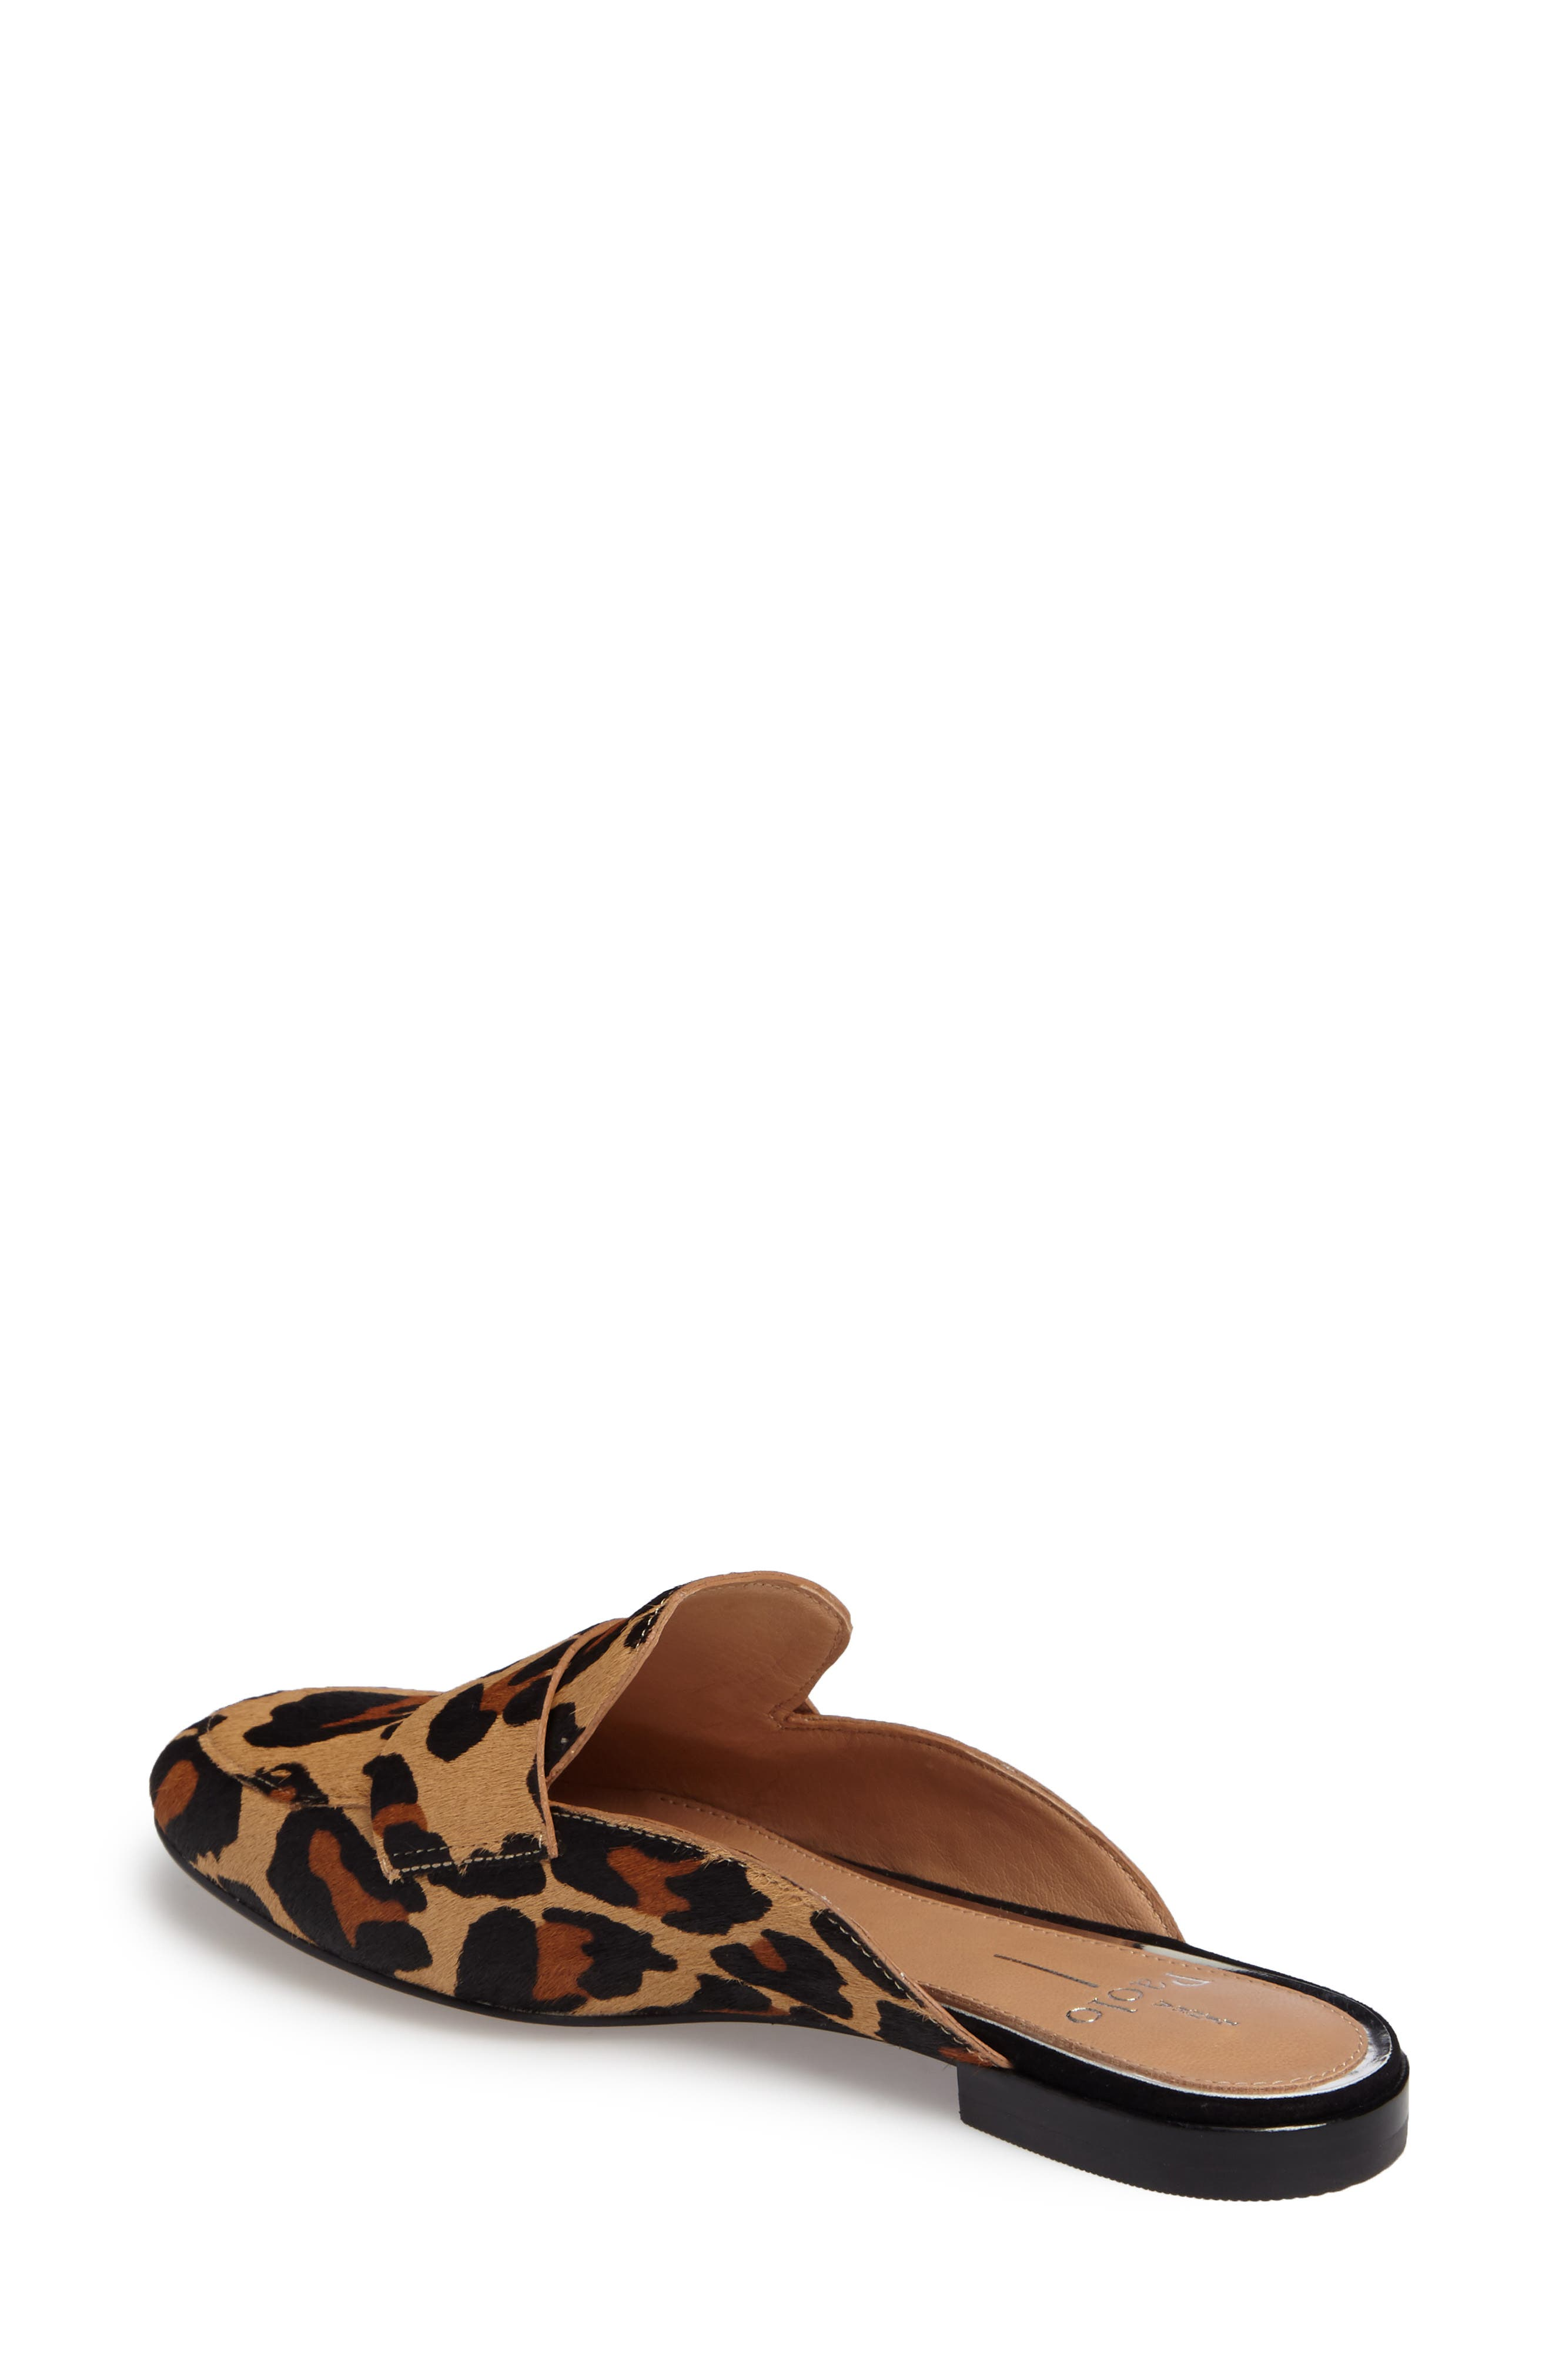 Annie Genuine Calf Hair Loafer Mule,                             Alternate thumbnail 2, color,                             COGNAC/ BLACK CALF HAIR